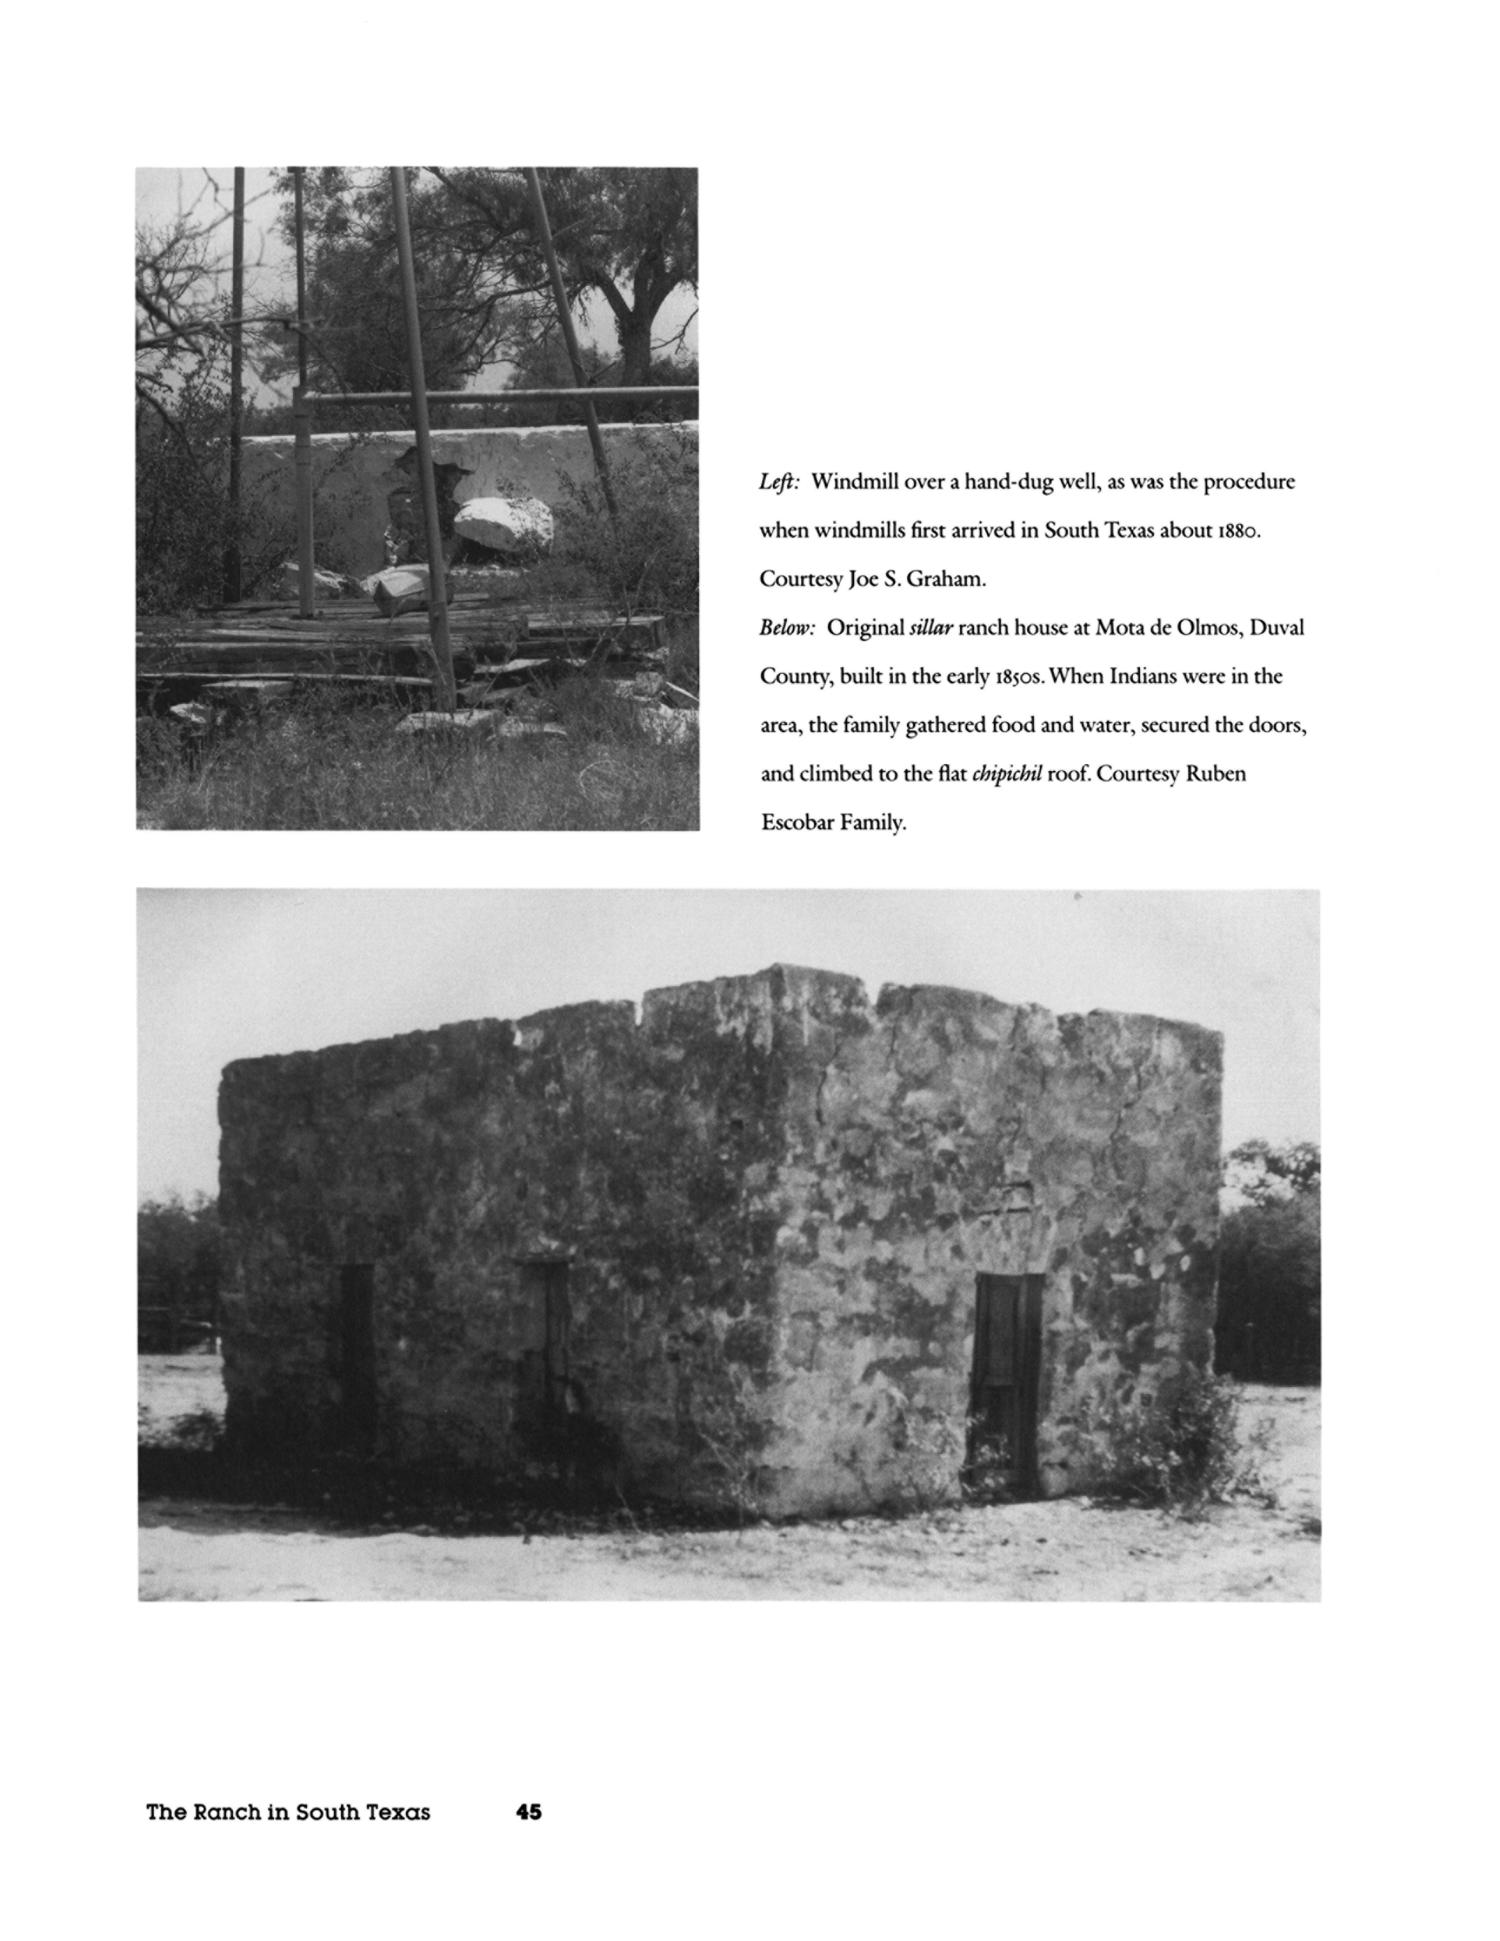 El Rancho in South Texas: Continuity and Change From 1750                                                                                                      45